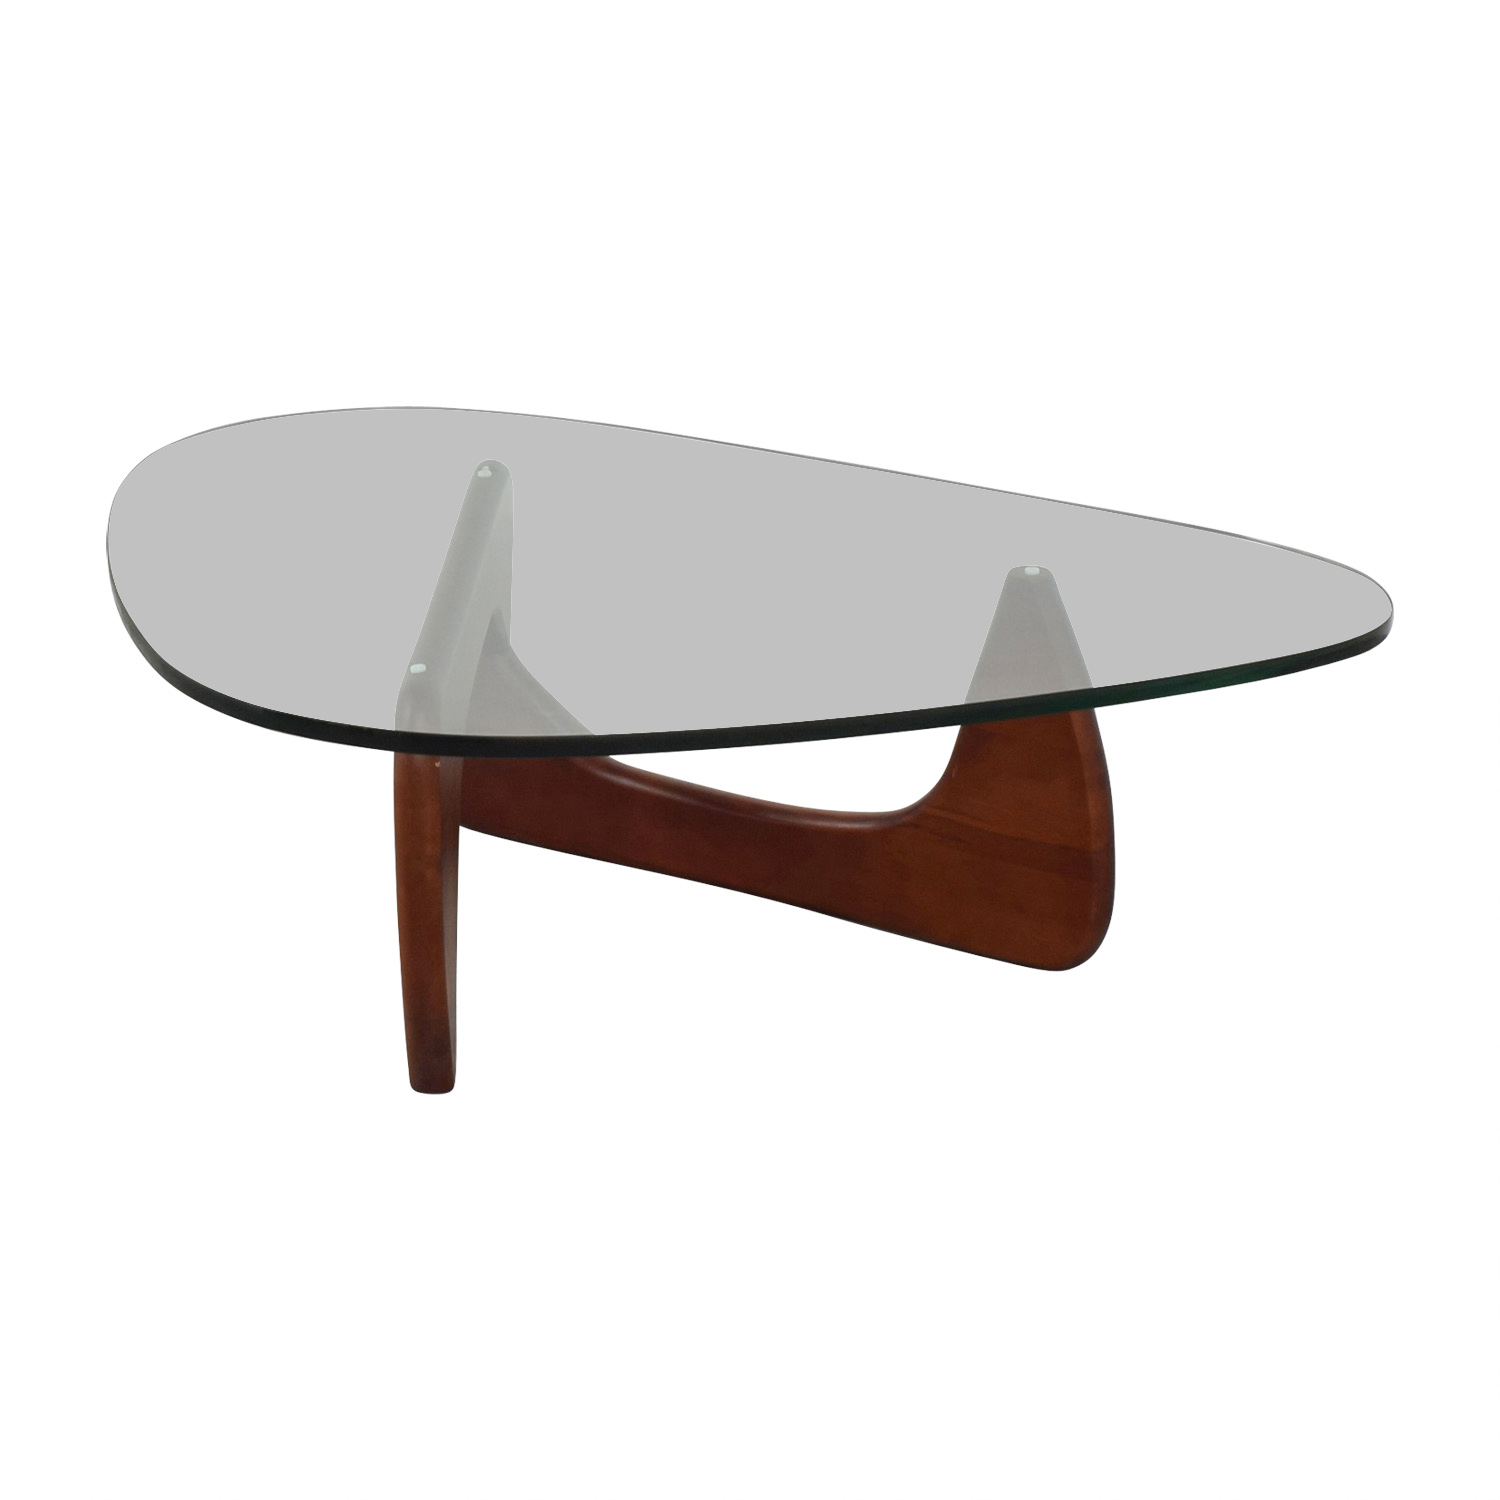 ... Buy Modway Isamu Noguchi Inspired Triangle Glass Coffee Table With  Cherry Wood Modway Coffee Tables ...